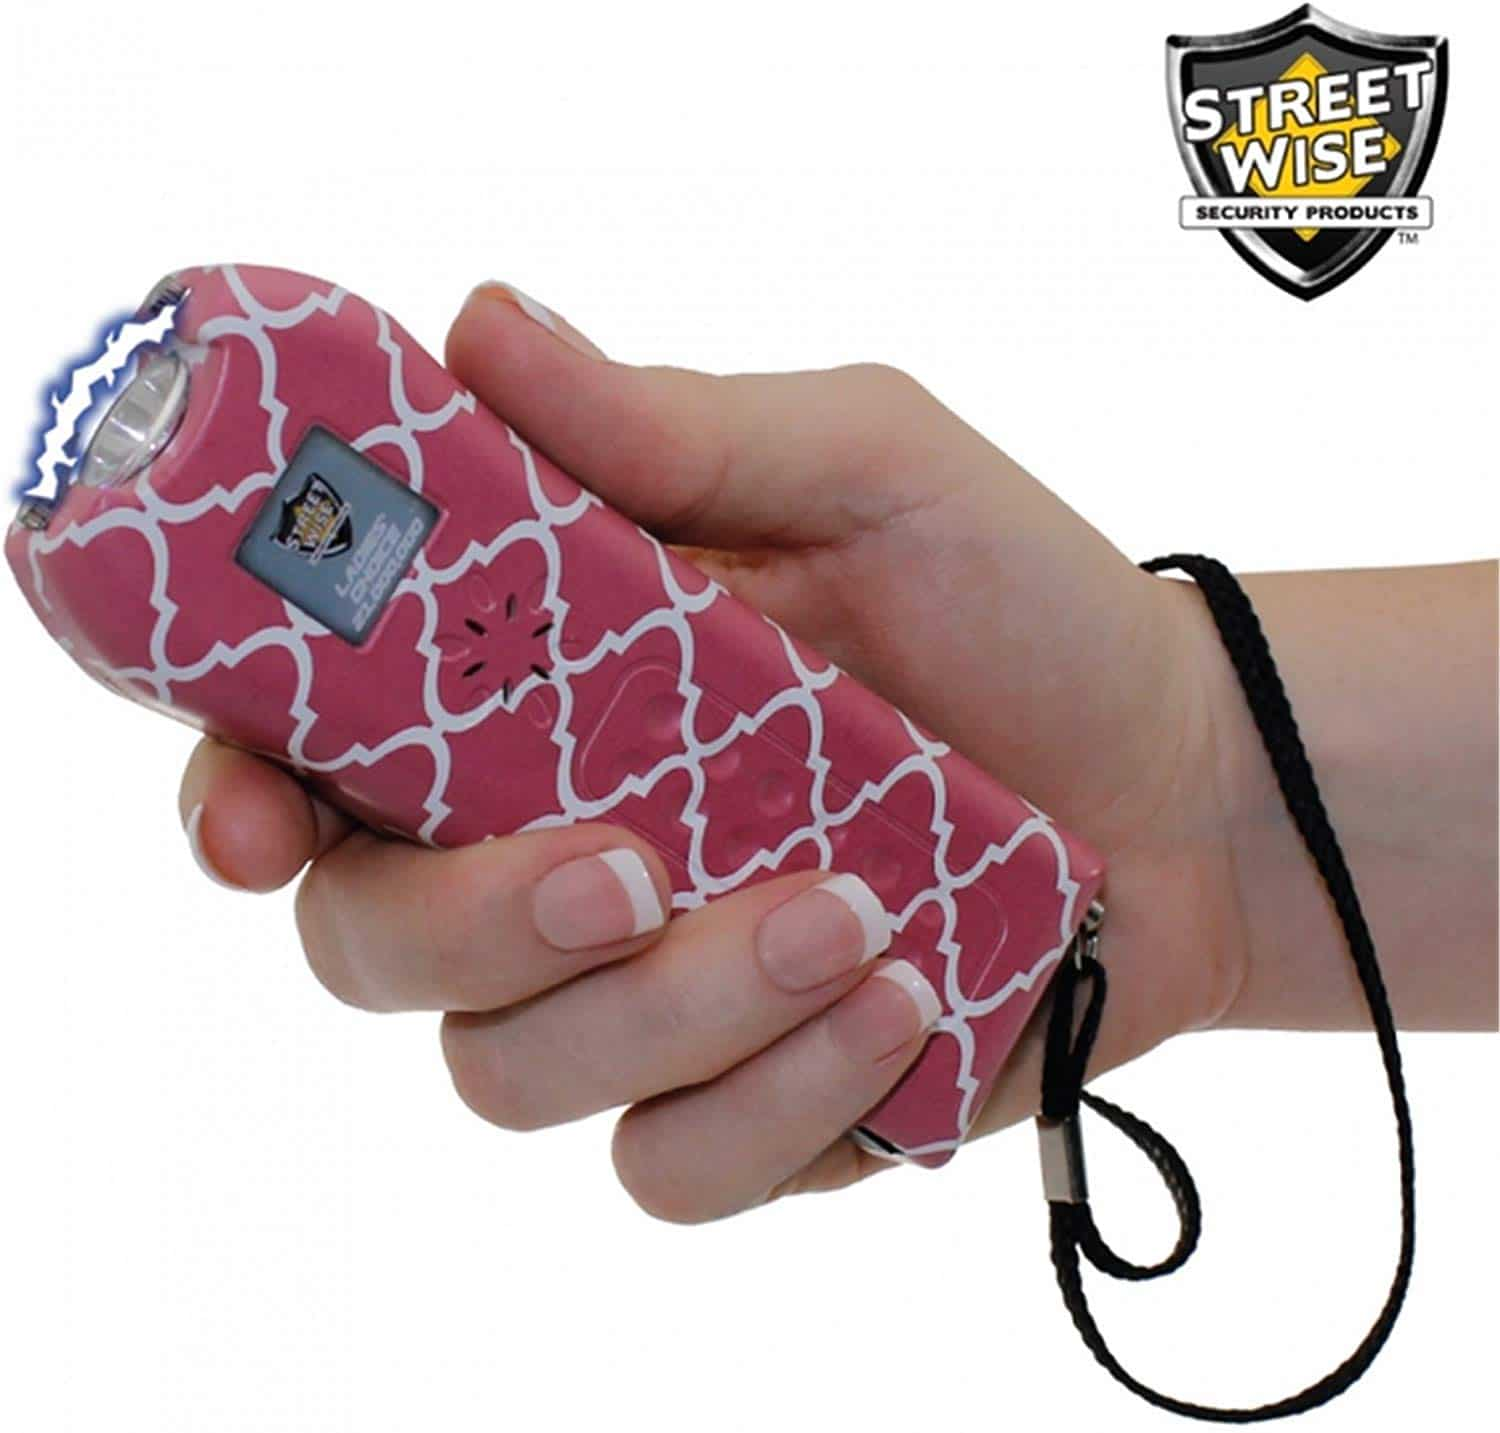 StreetWise Ladies Choice 21 Million Volt Rechargeable Stun Gun with Alarm and Flashlight